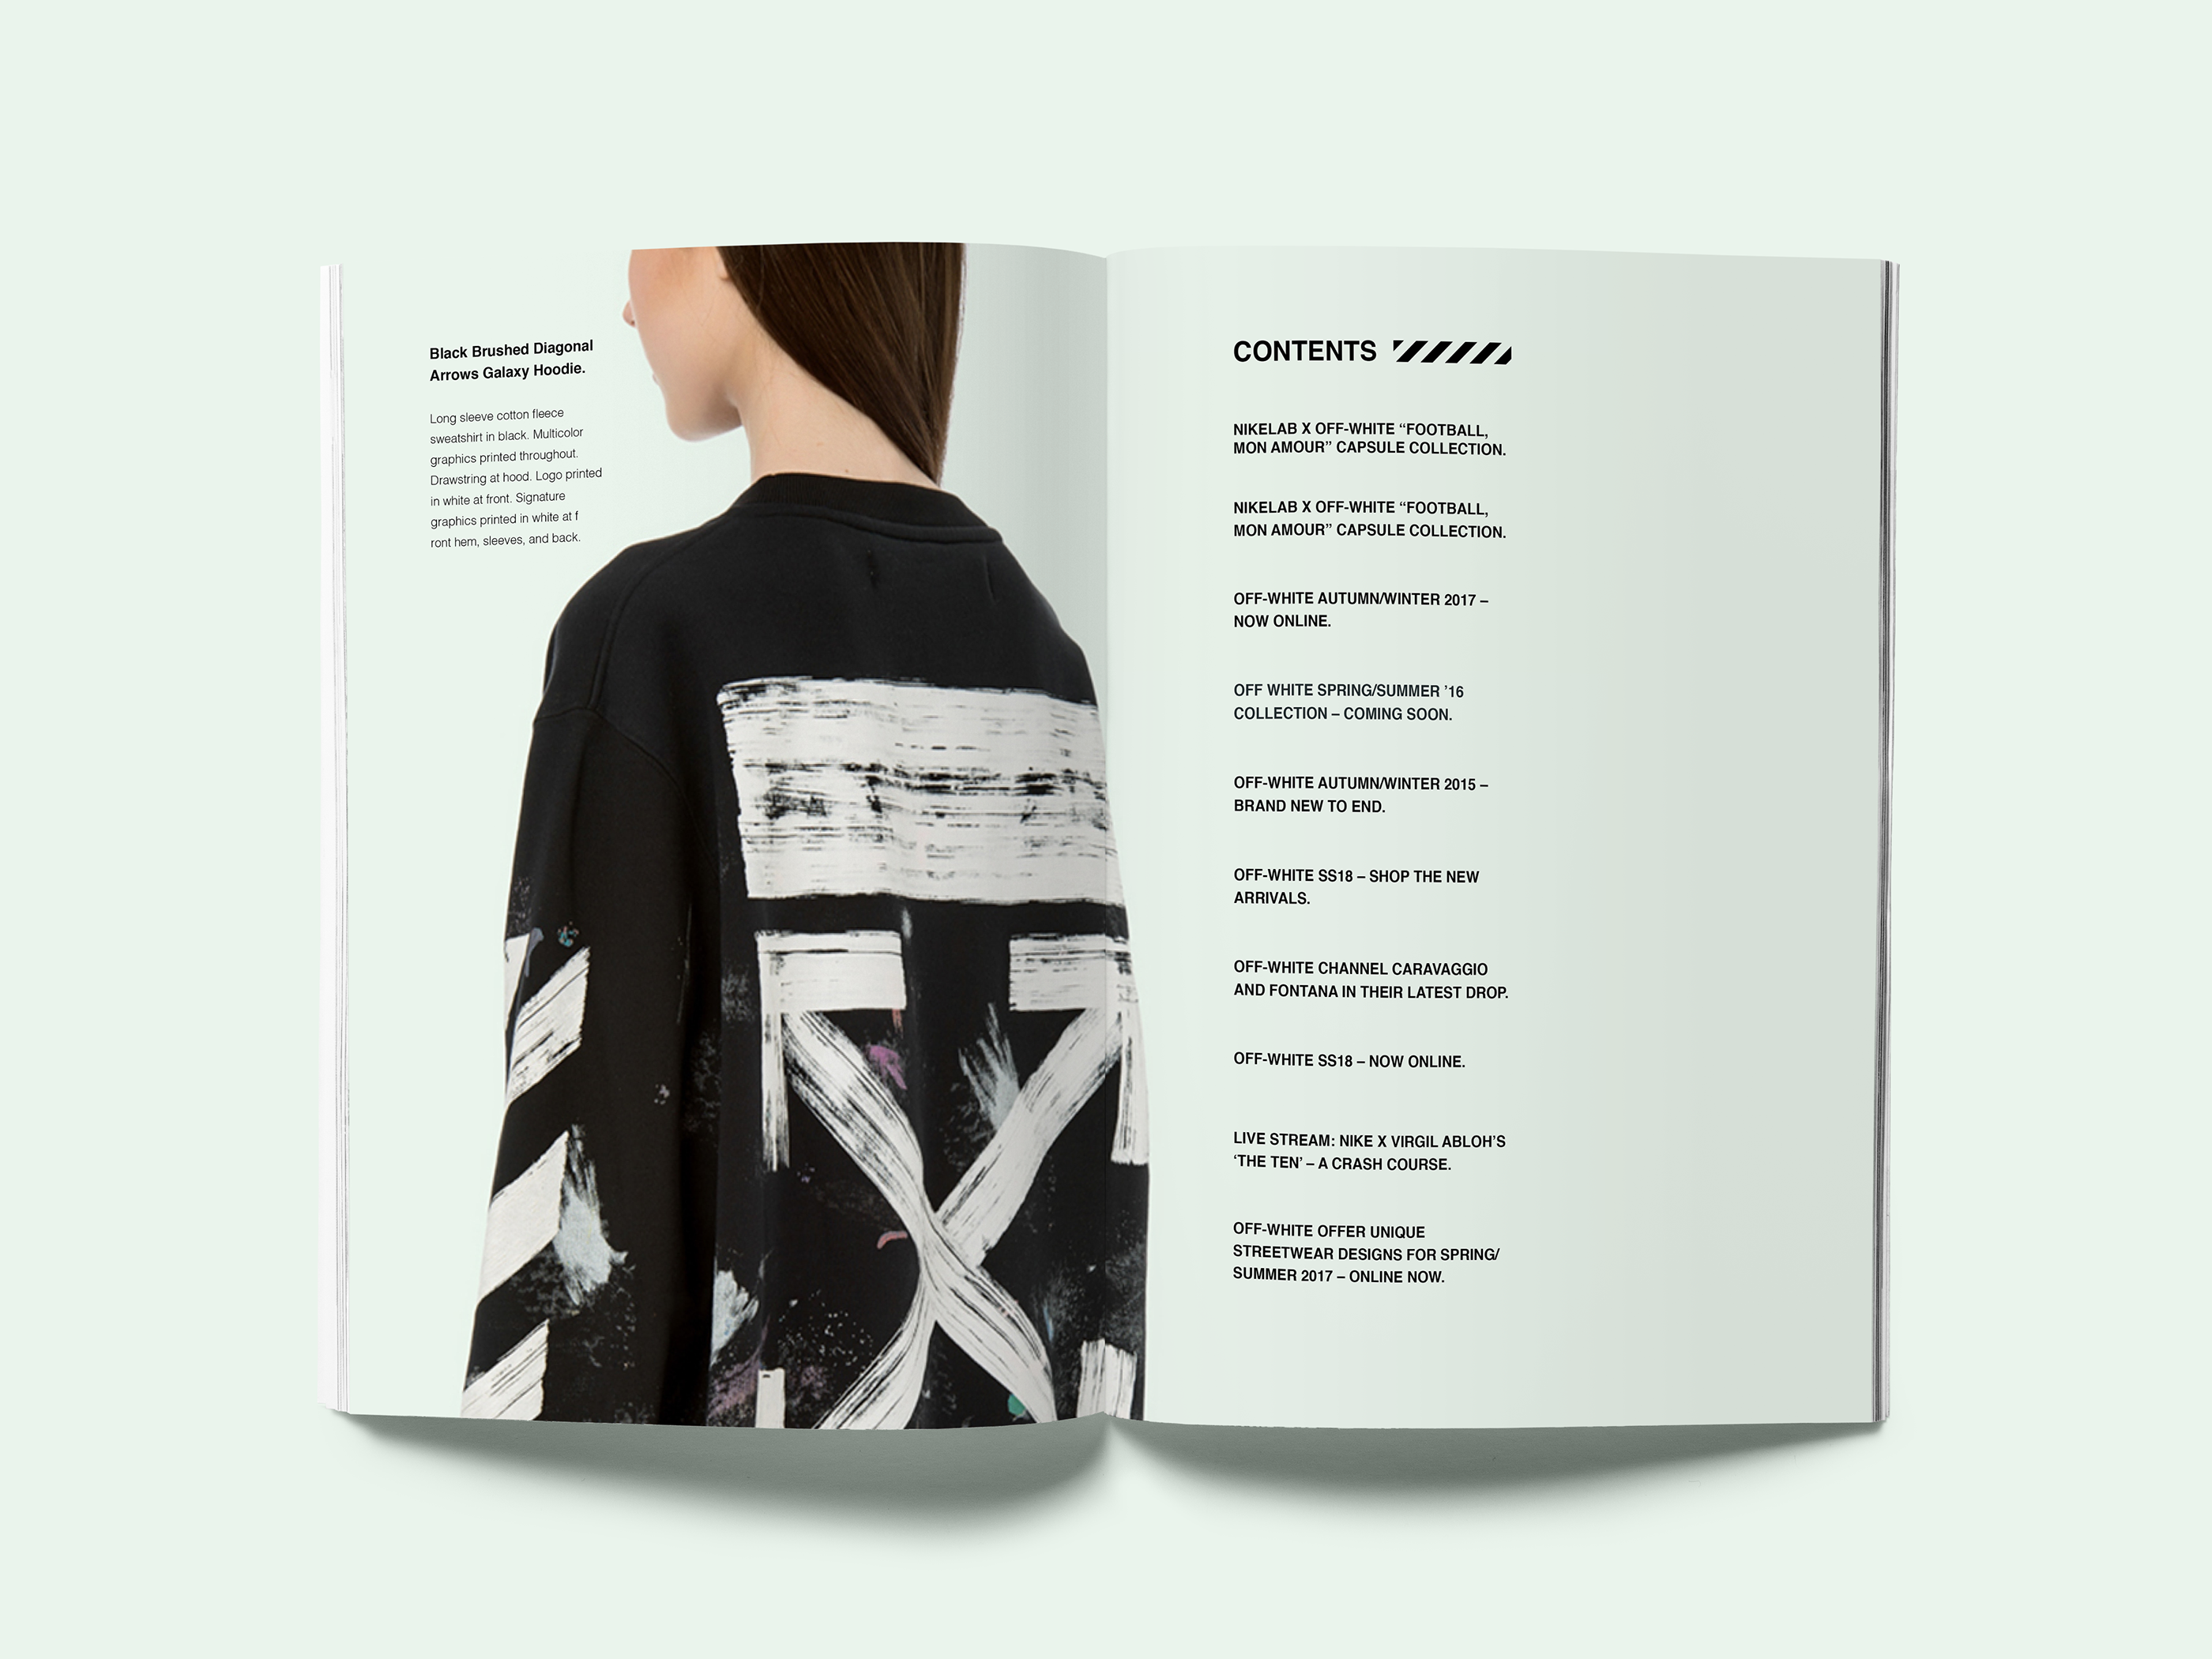 64176c0a3 END: OFF WHITE MAGAZINE on Behance